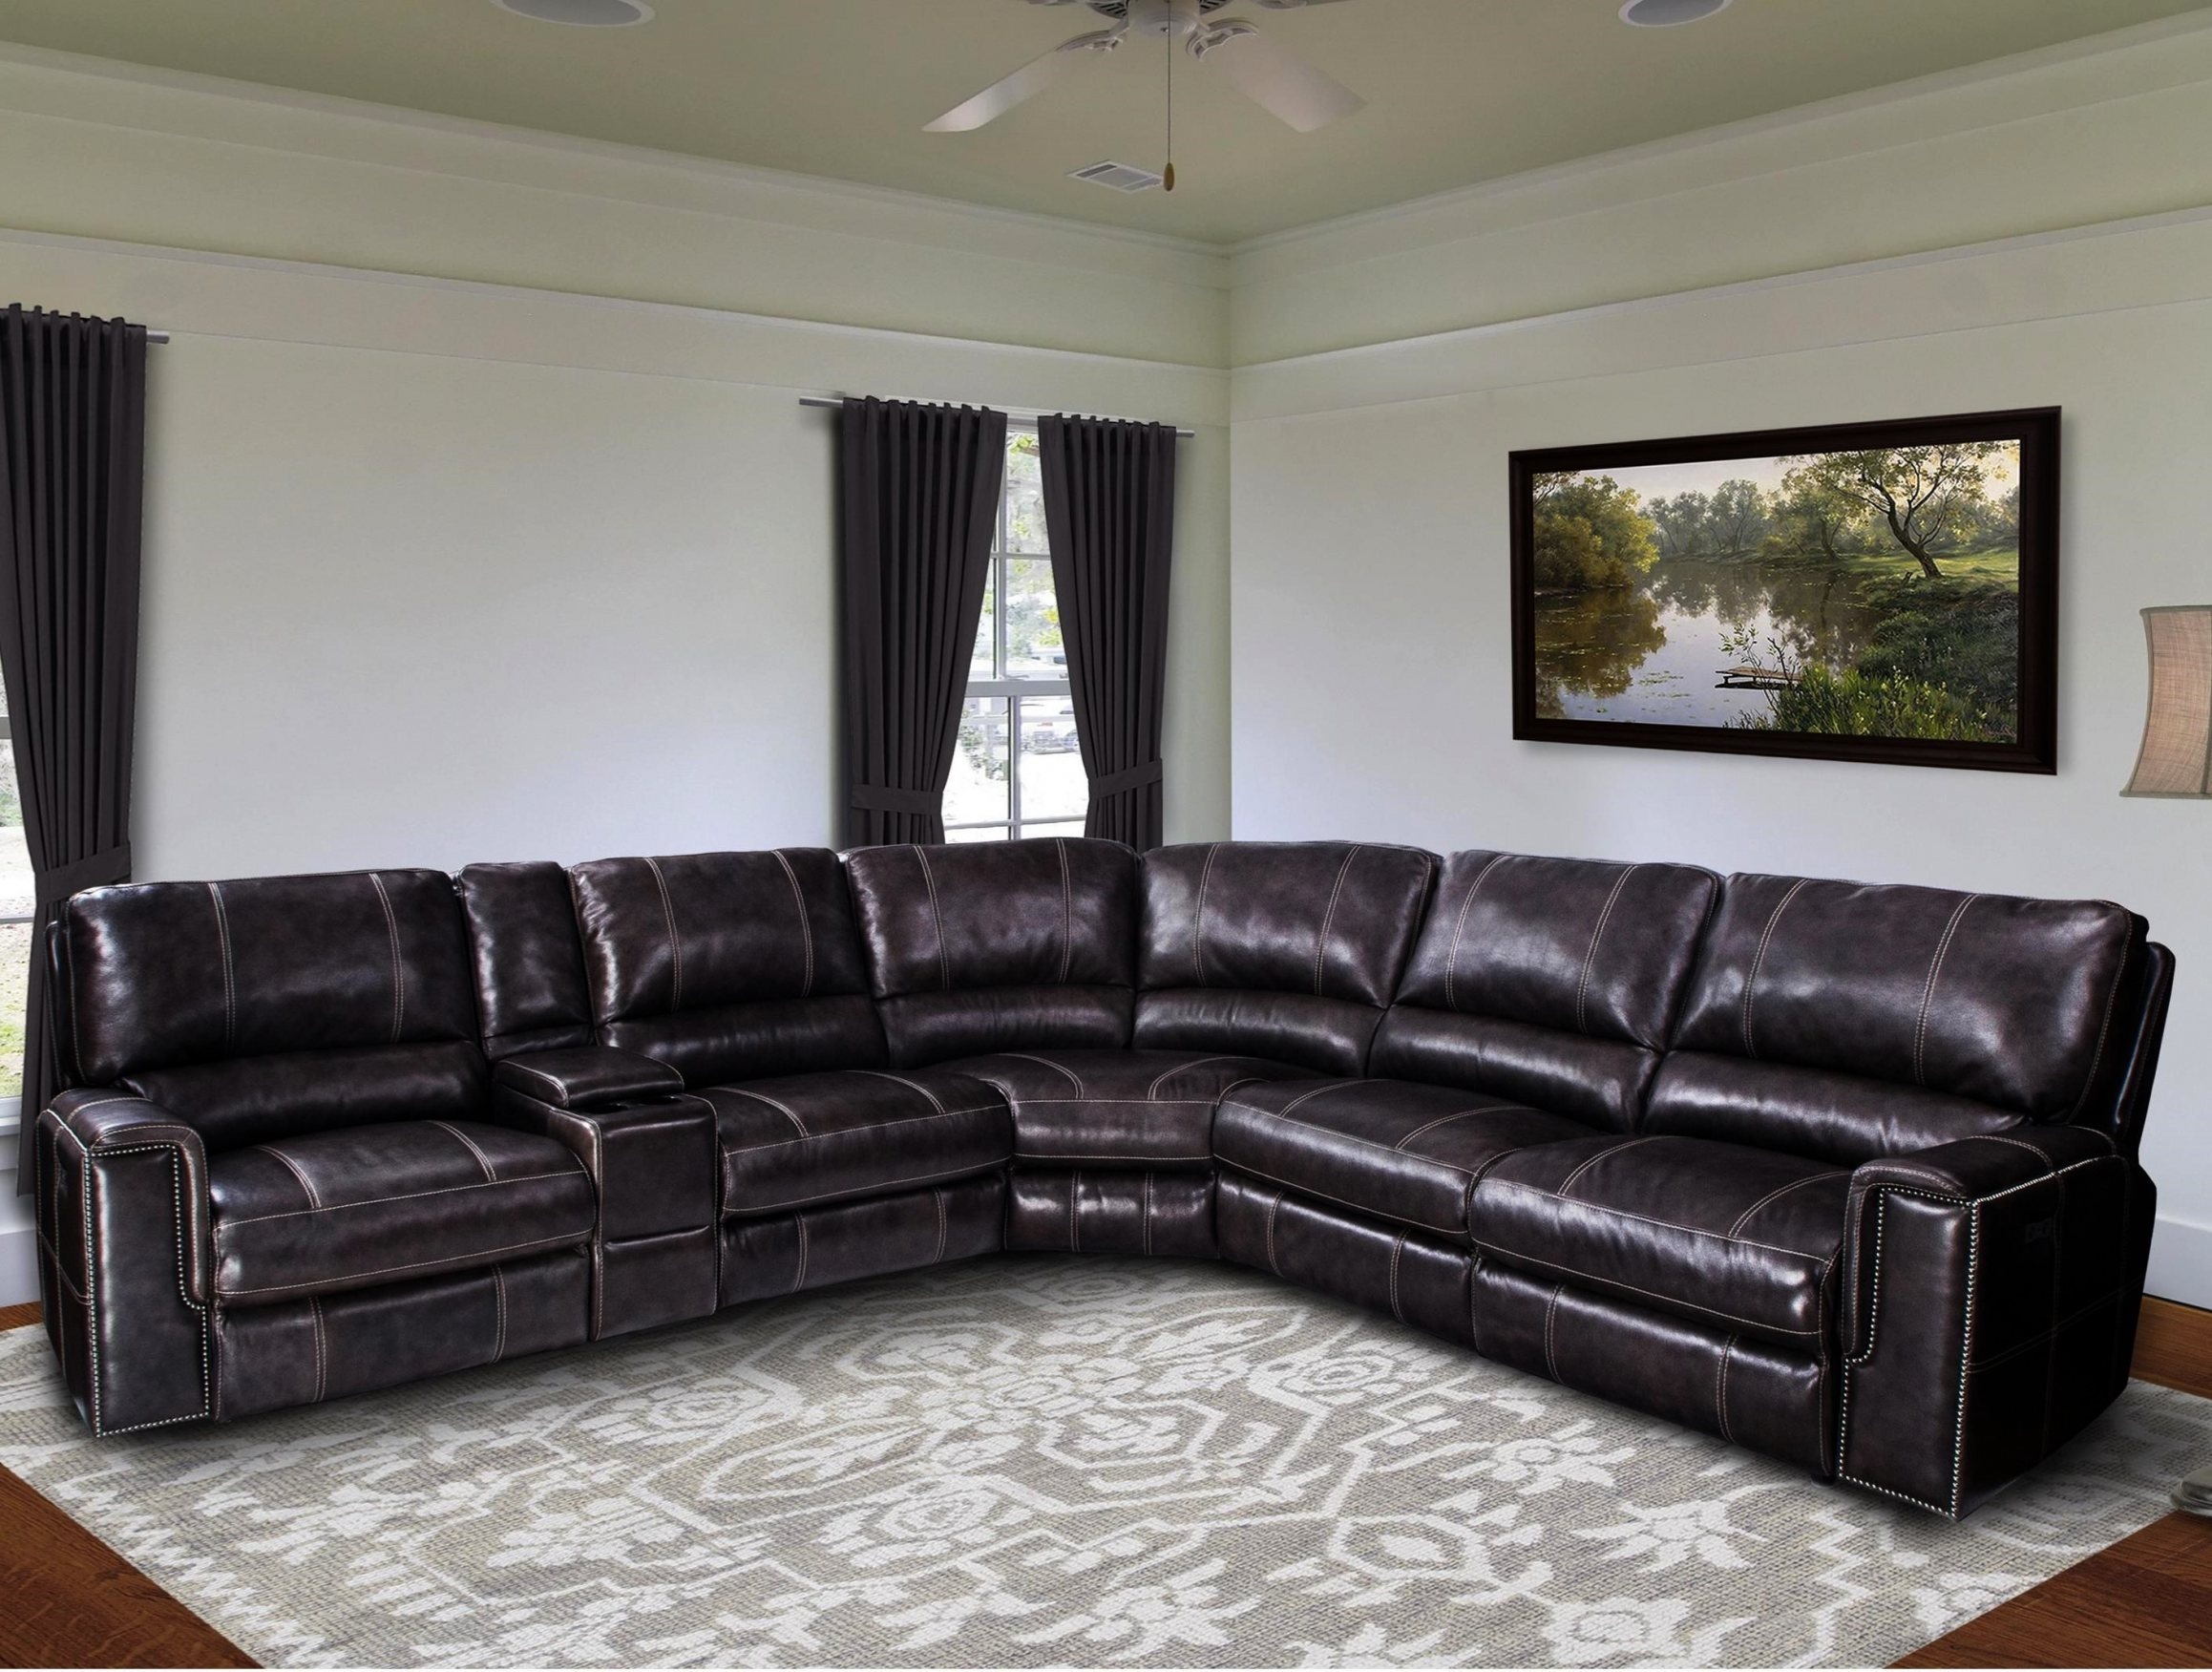 Furniture Captivating Jeromes Sofas For Living Room Design regarding 11 Some of the Coolest Ways How to Upgrade Living Room Sets San Antonio